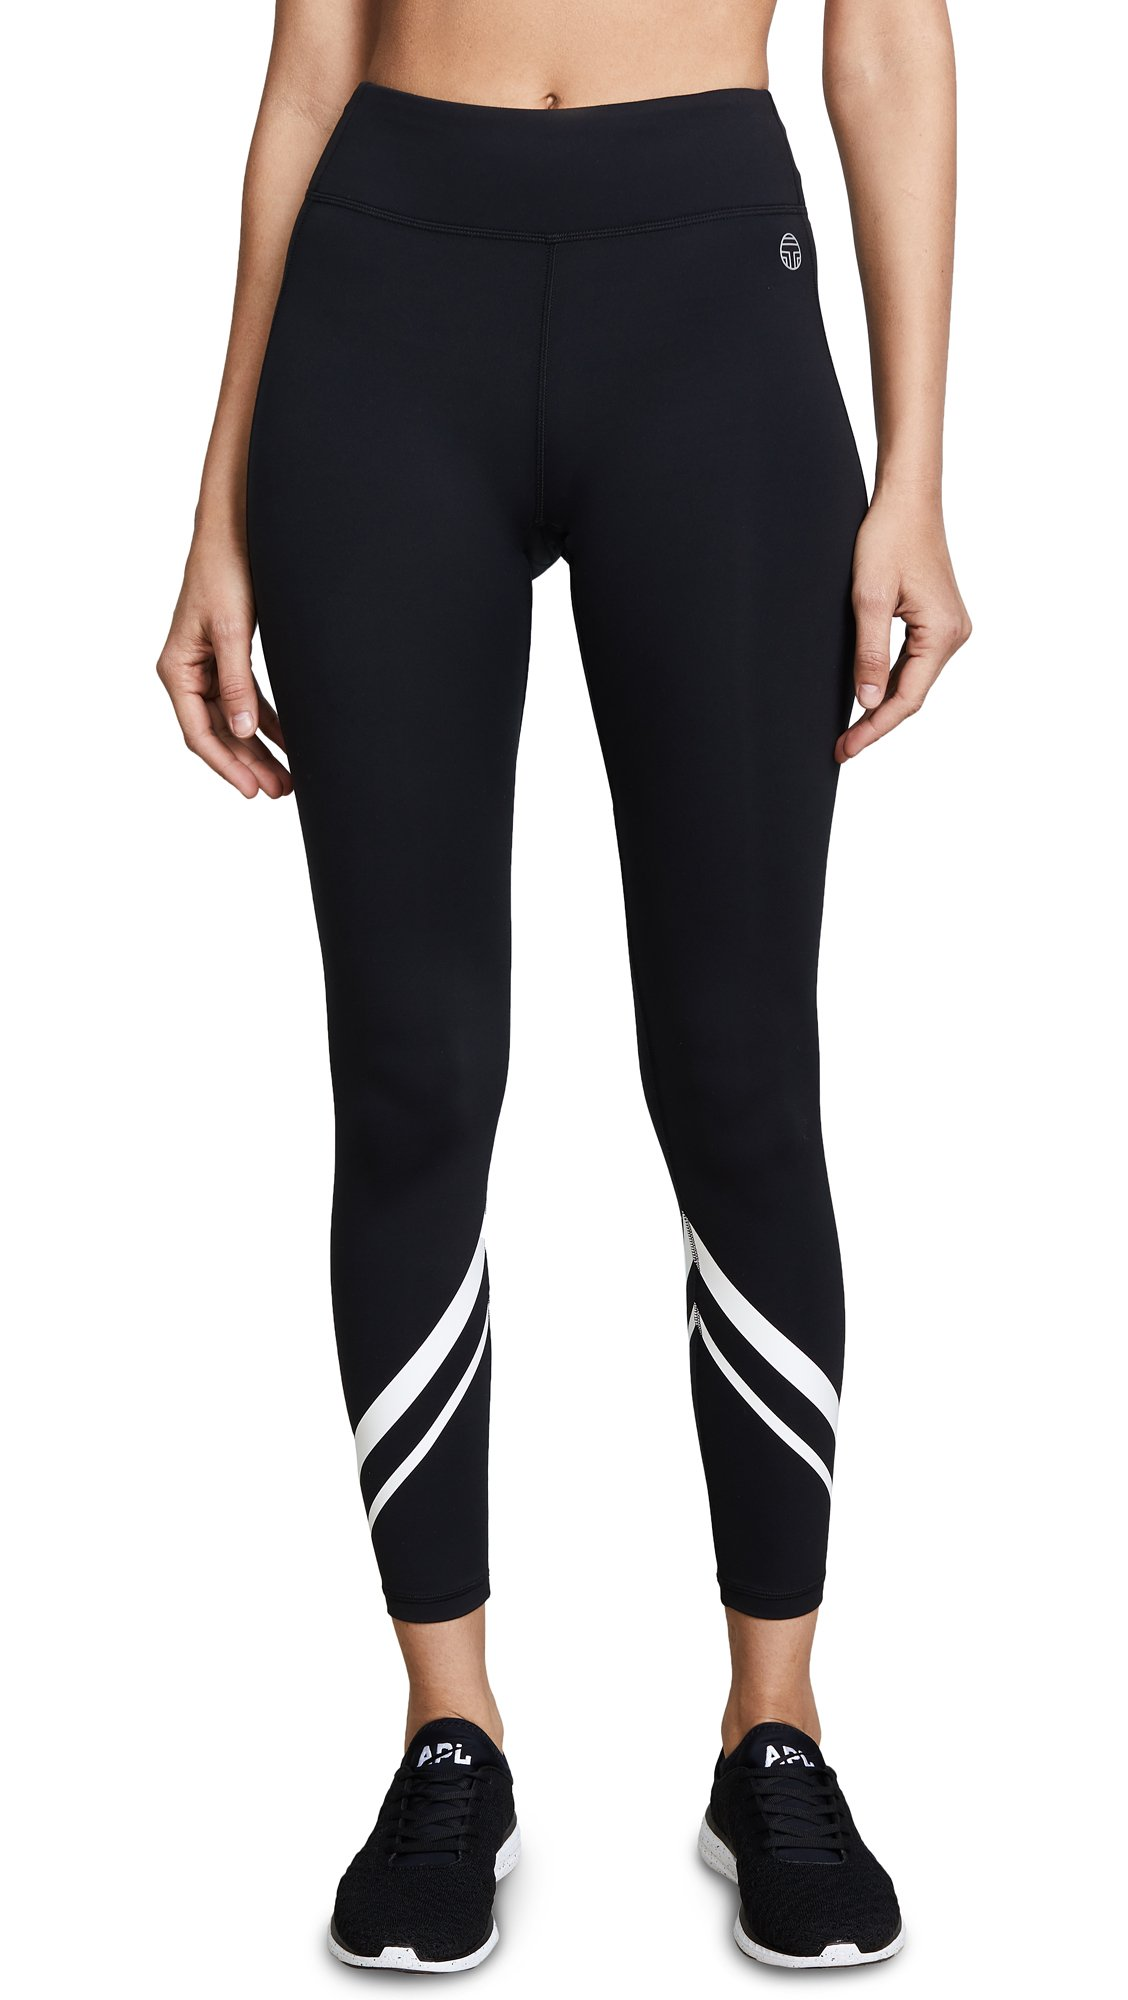 Tory Sport Women's Chevron Full Length Leggings, Sport Black, Large